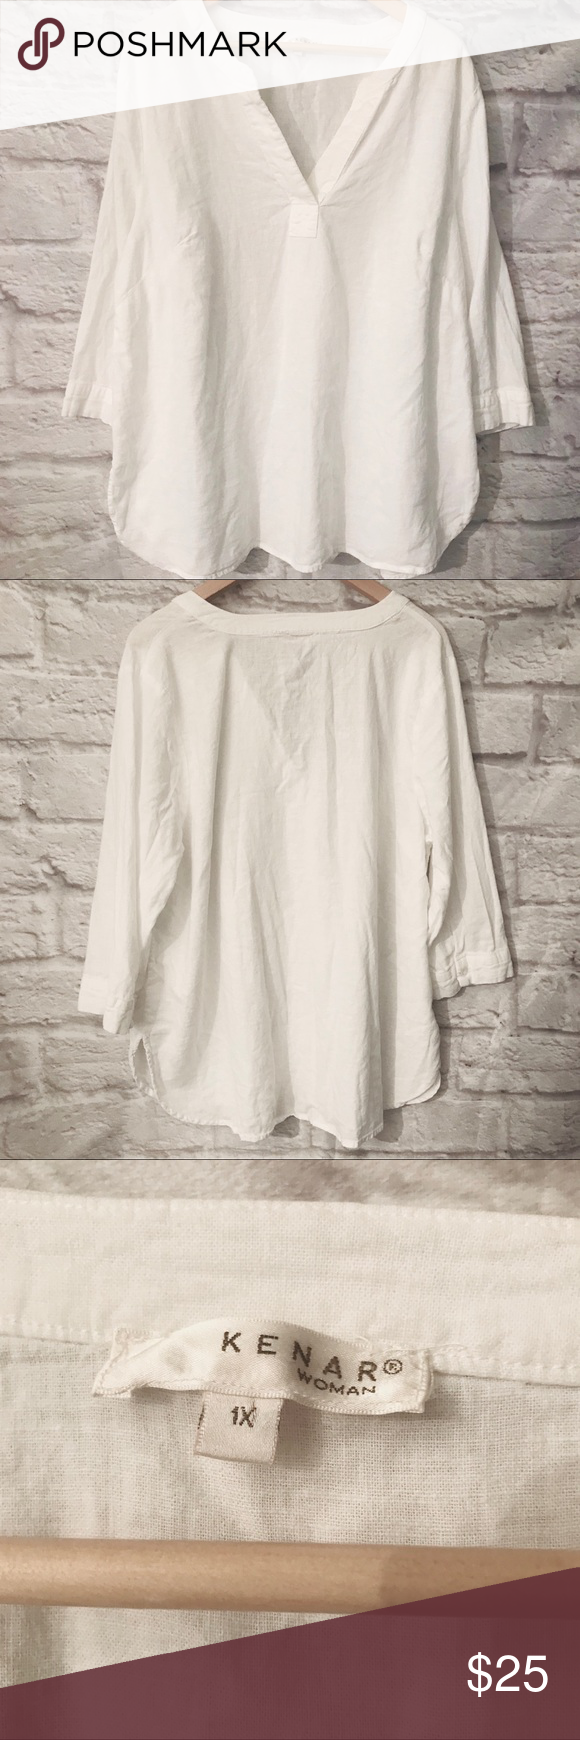 Kenar Line. blend White Shirt This Kenar shirt is a linen and rayon blend that is soft and has a Boho casual style.  Pair with skinny jeans, leggings and ankle boots or sandals or dress up with a statement necklace and palazzo pants or a pencil skirt and heels.  This is in great shape.  Note the close up photo of a thread that is darker. Kenar Tops #skinnyjeansandankleboots